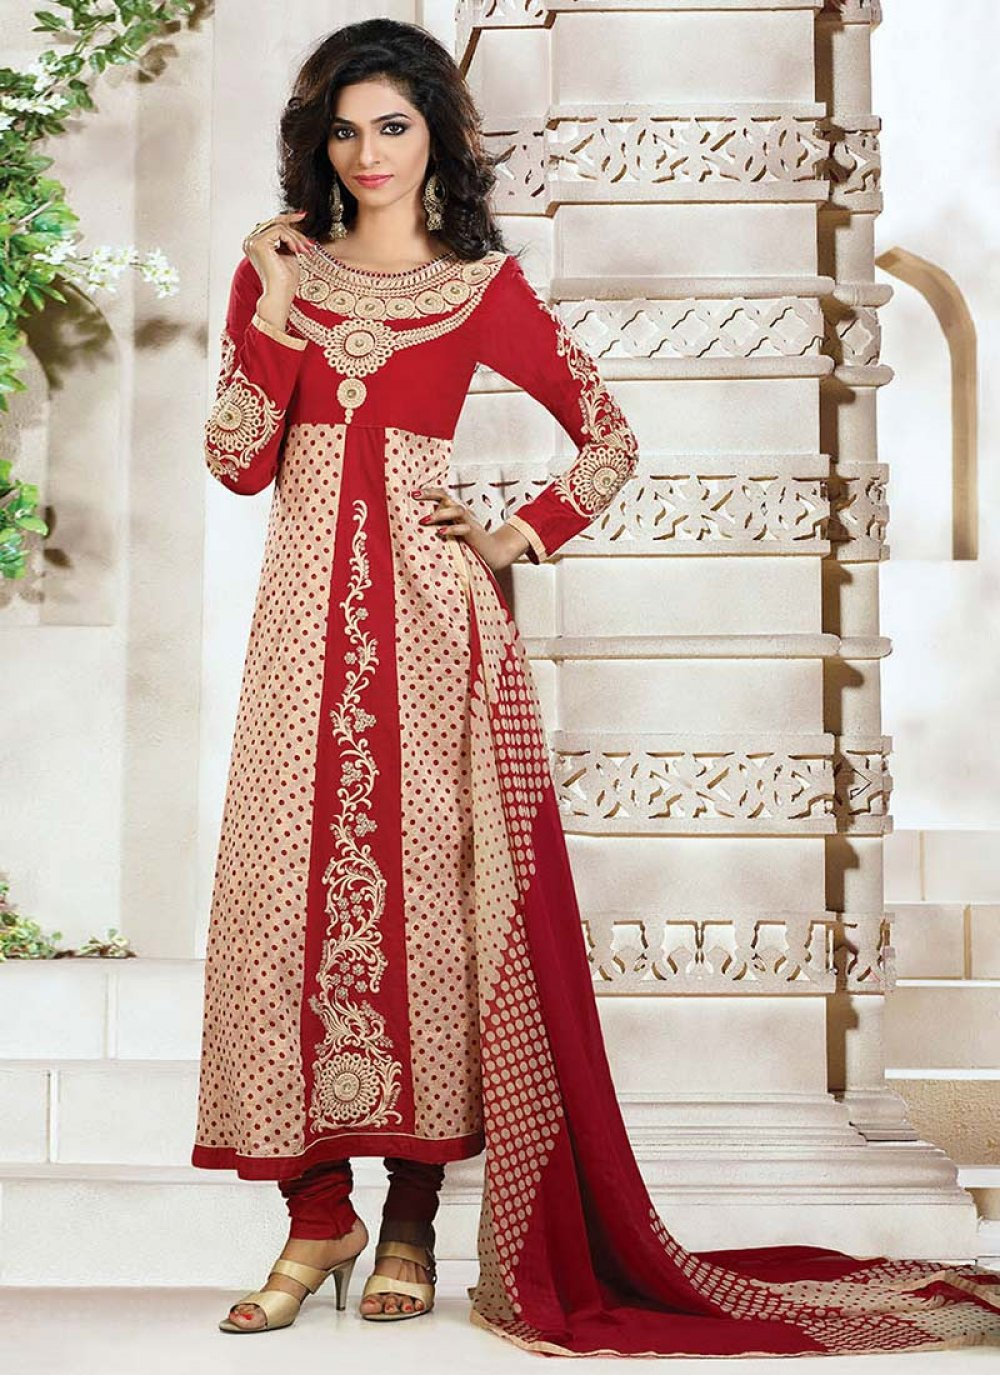 Red And Cream Printed Churidar Suit